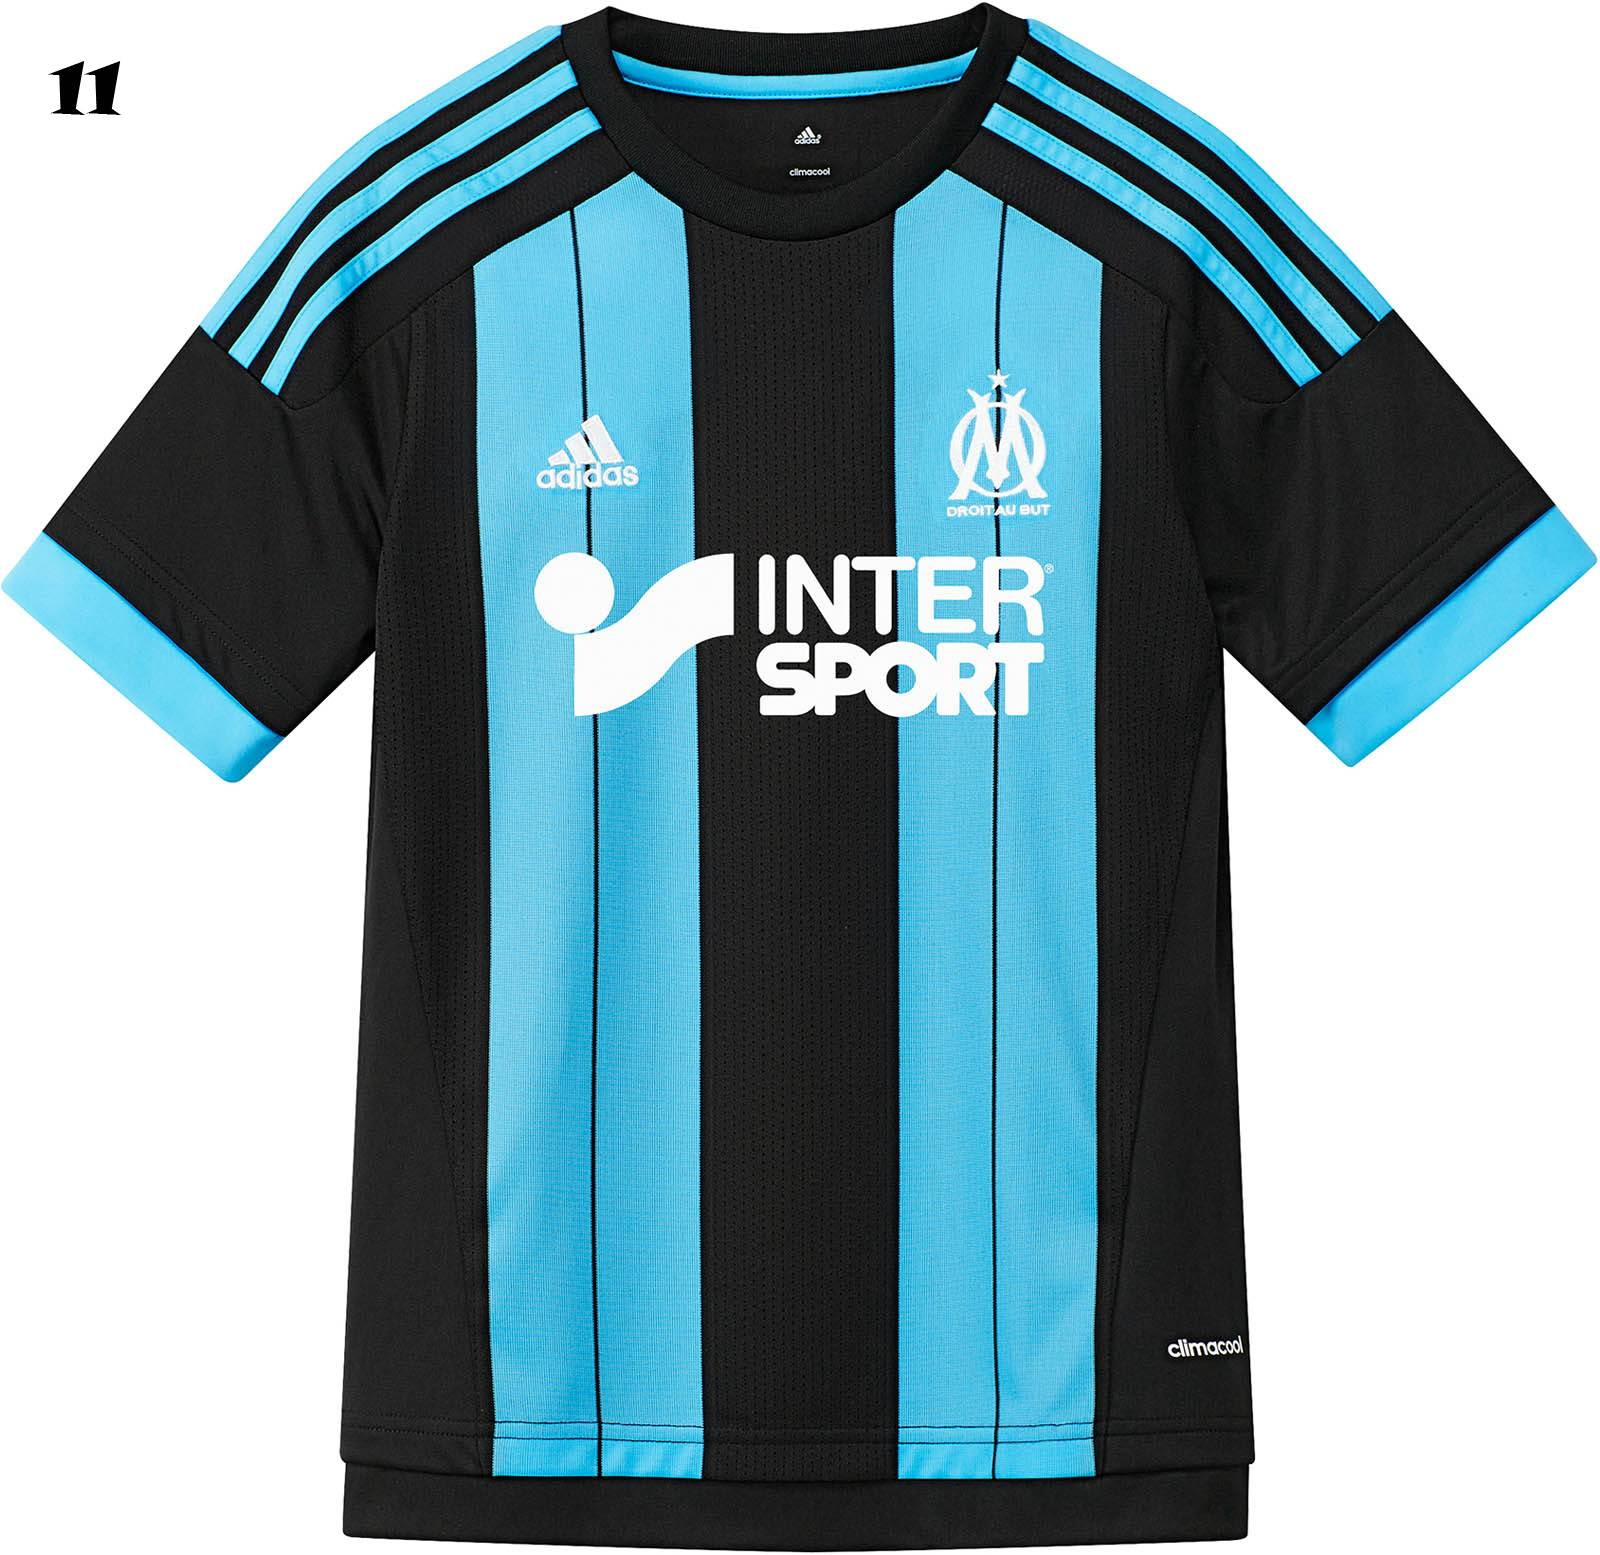 54183cae8a3 The new black   light blue OM 15-16 Away Jersey features a unique vertical  stripes design to make a statement on the pitch. Adidas uses a simple crew  neck ...